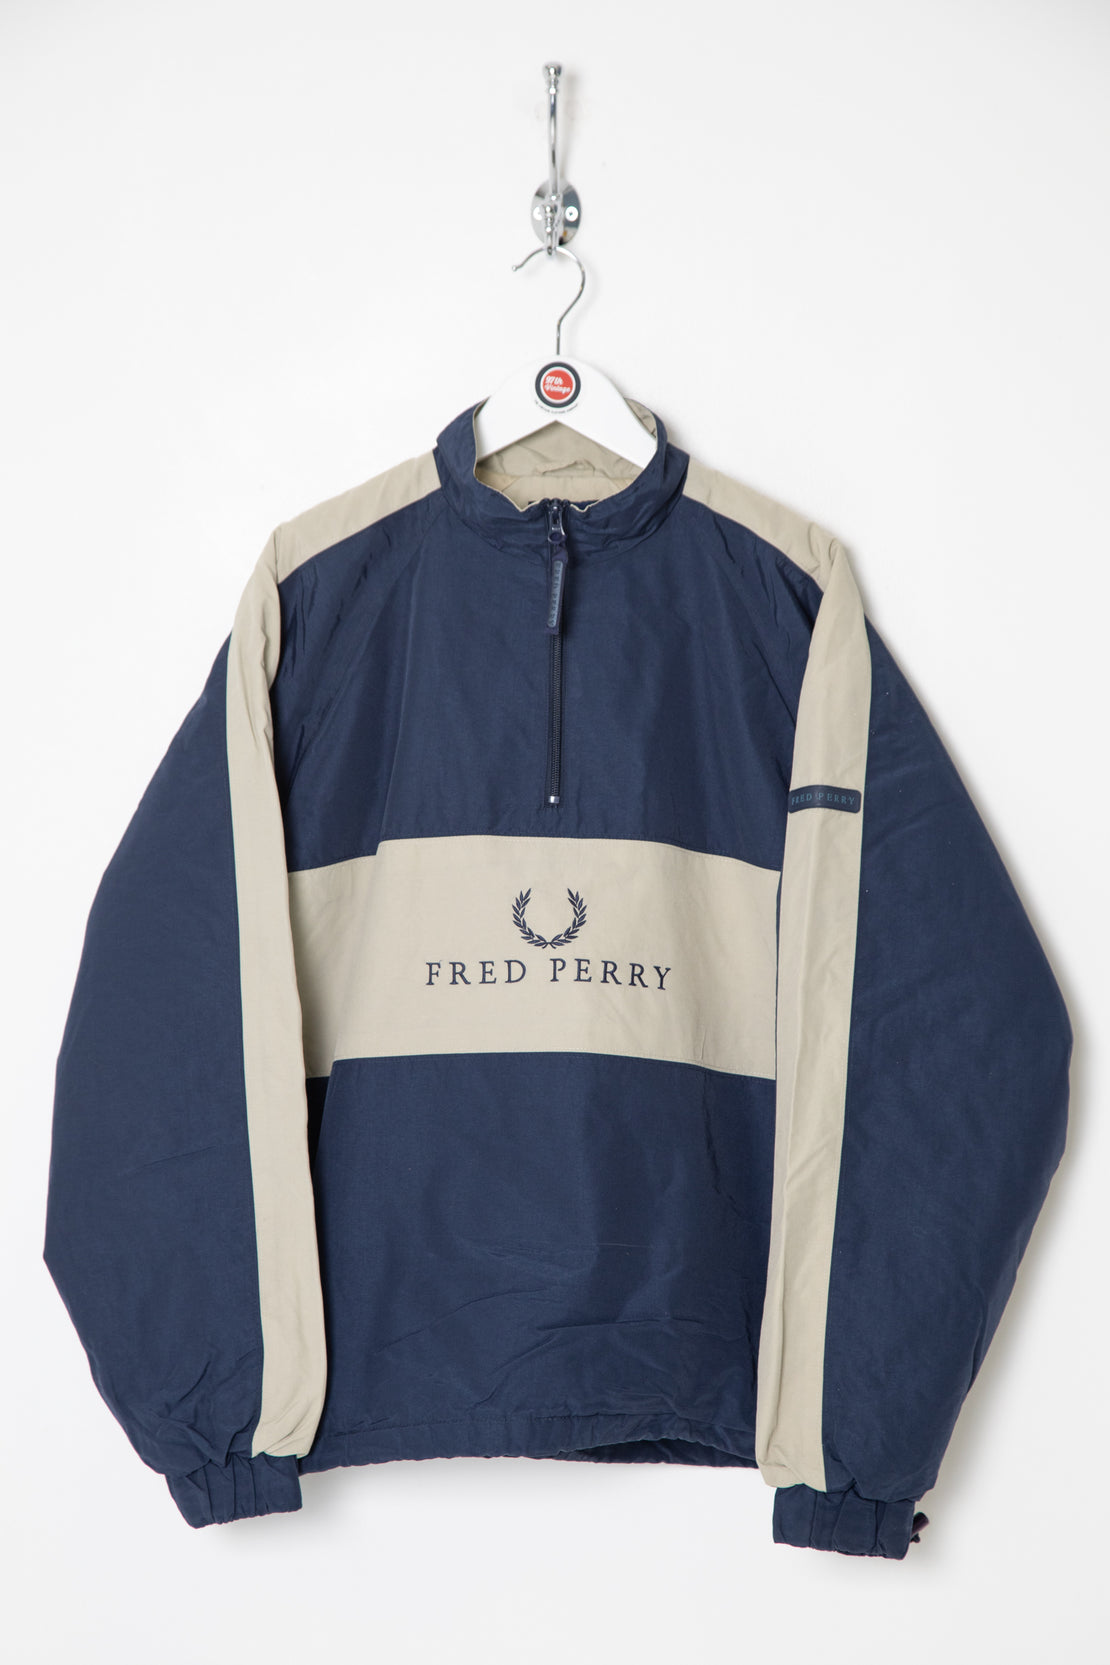 Fred Perry Fleece Lined Pullover (S)